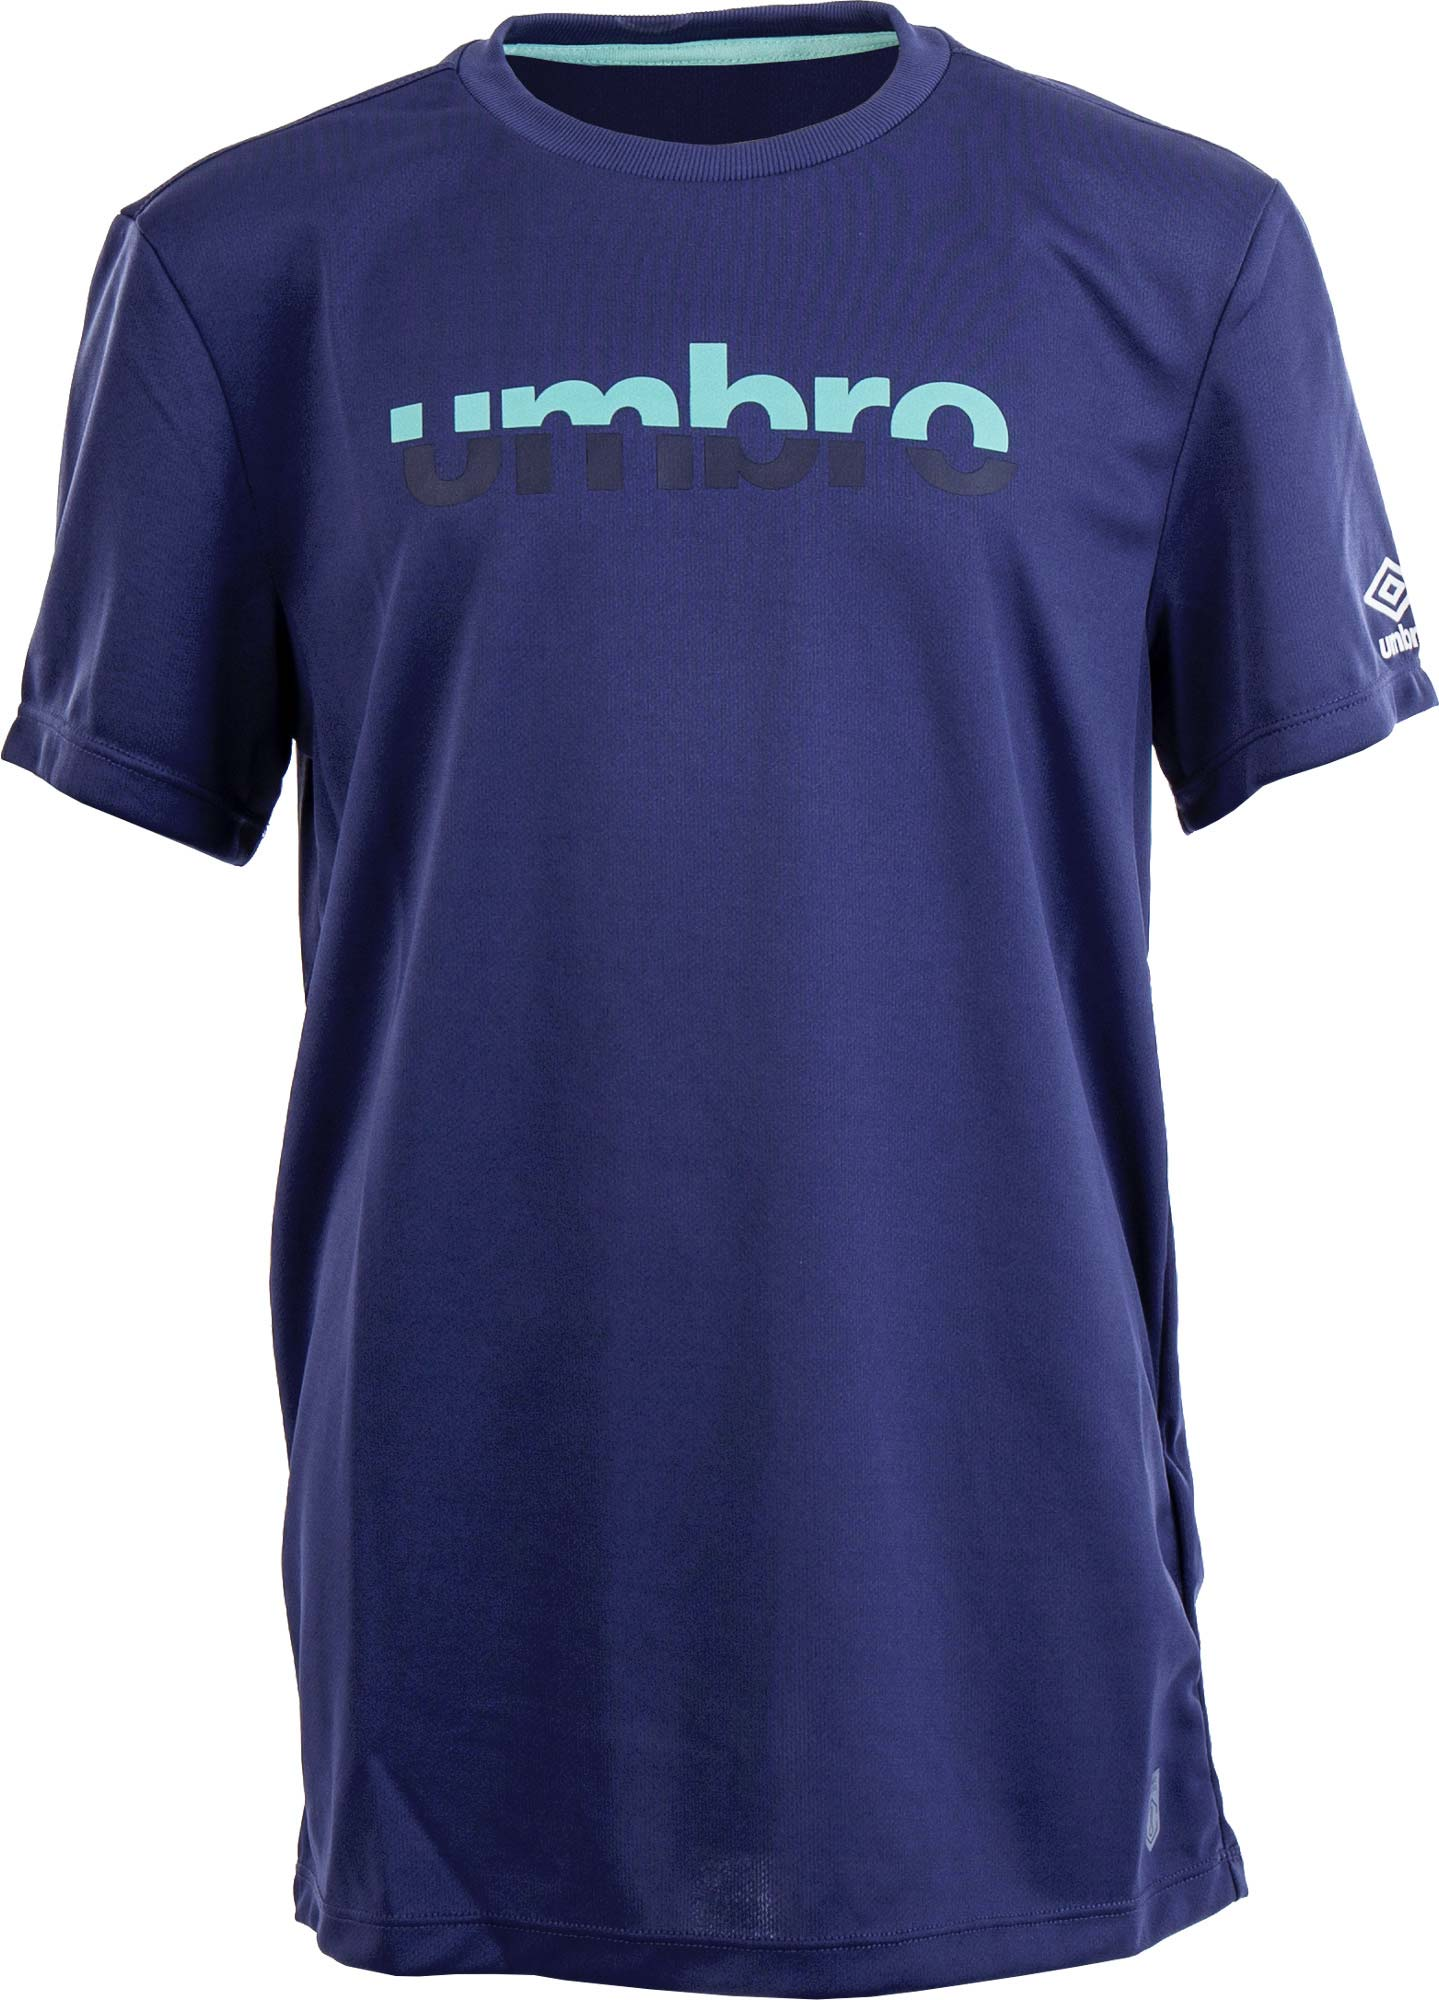 Umbro Pro Training Graphic Word Tee Jnr Sportisimo Cz